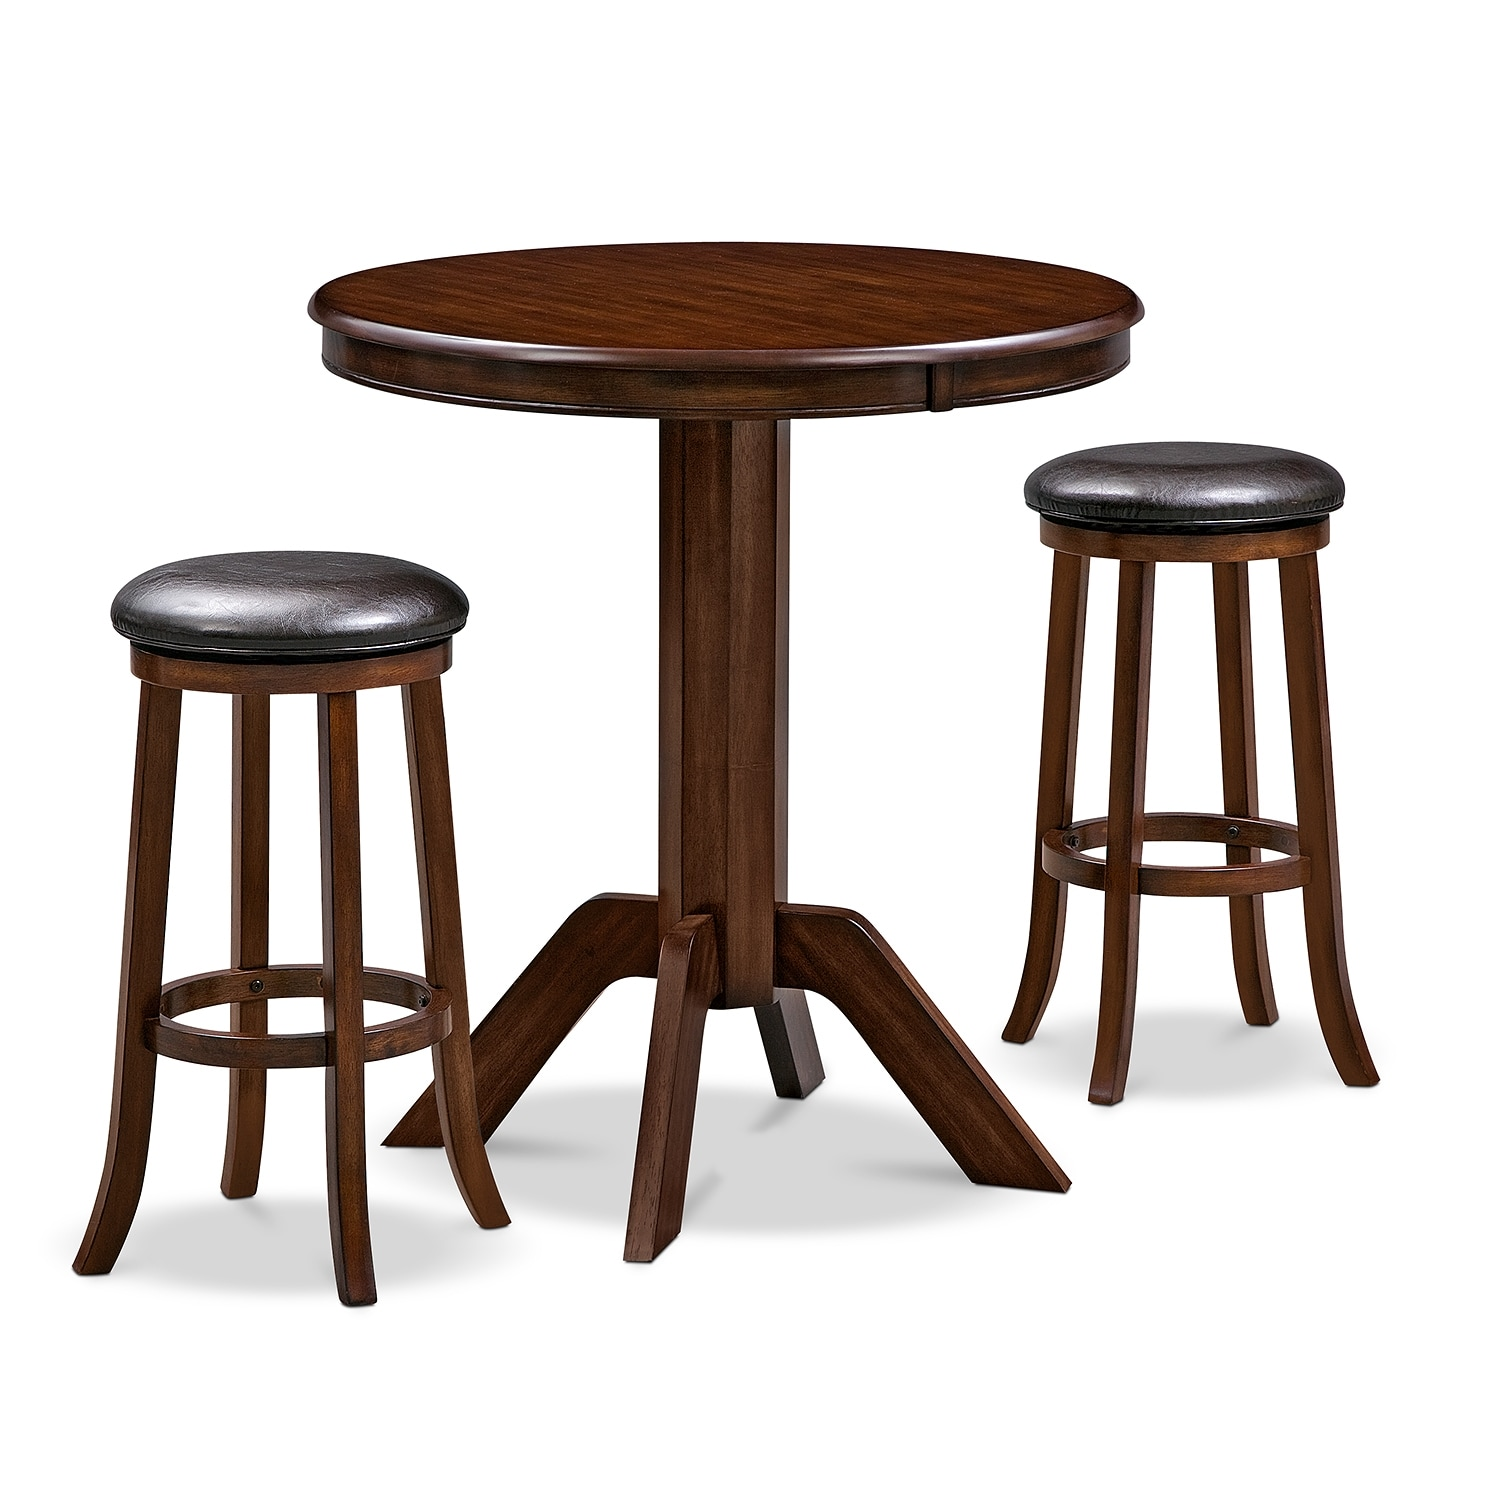 Dining Room Furniture - Concord Tinker 3 Pc. Bar-Height Dinette